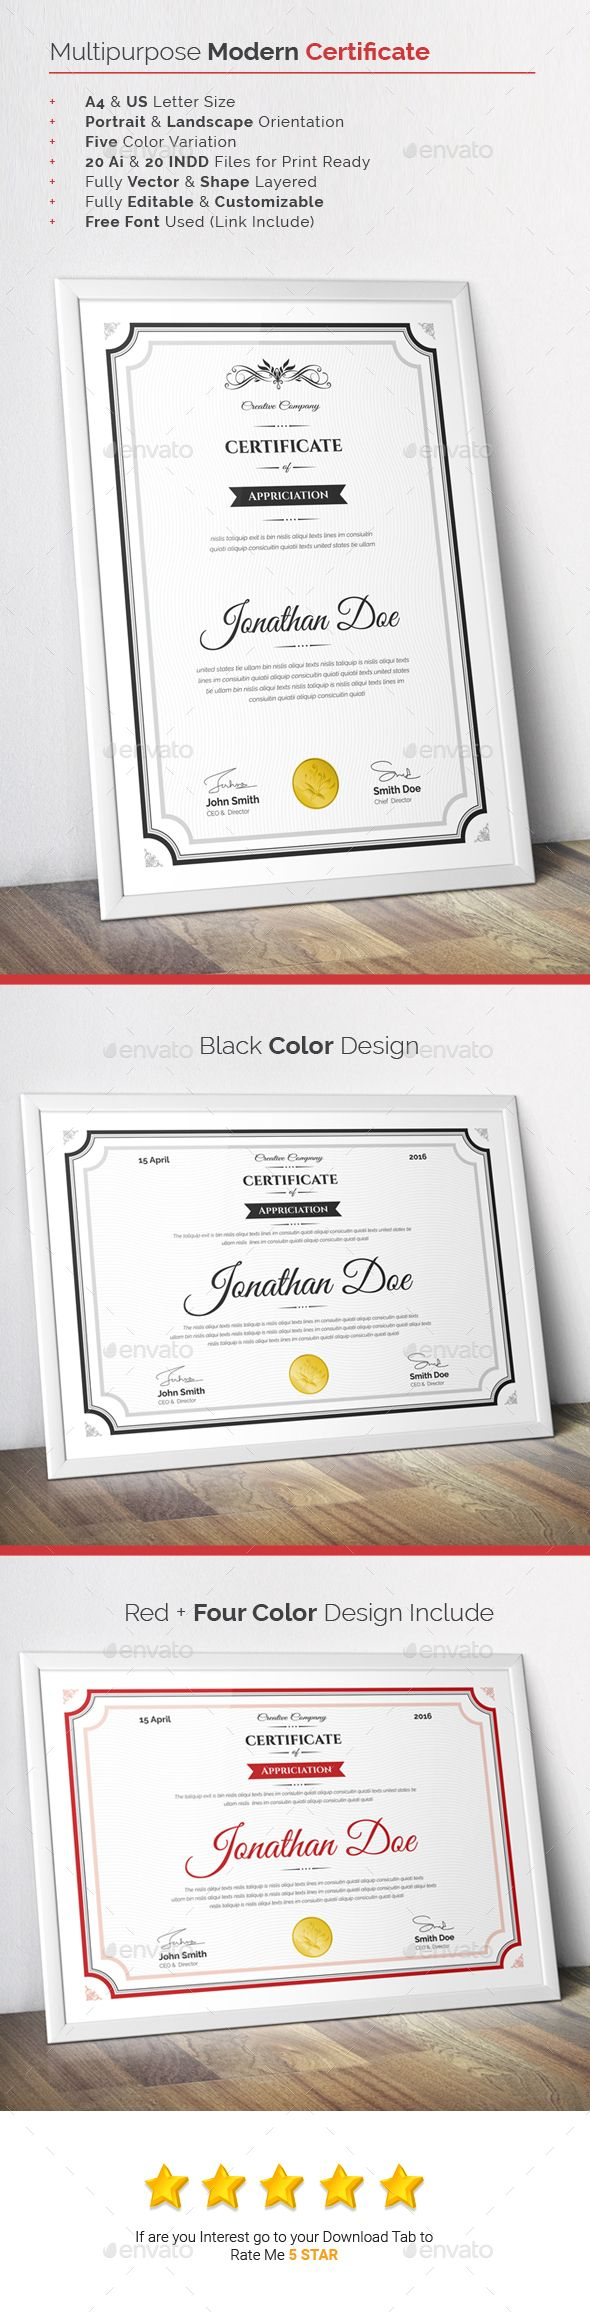 22 best certificate images on pinterest certificate templates multipurpose modern certificate template indd vector ai download here http xflitez Gallery